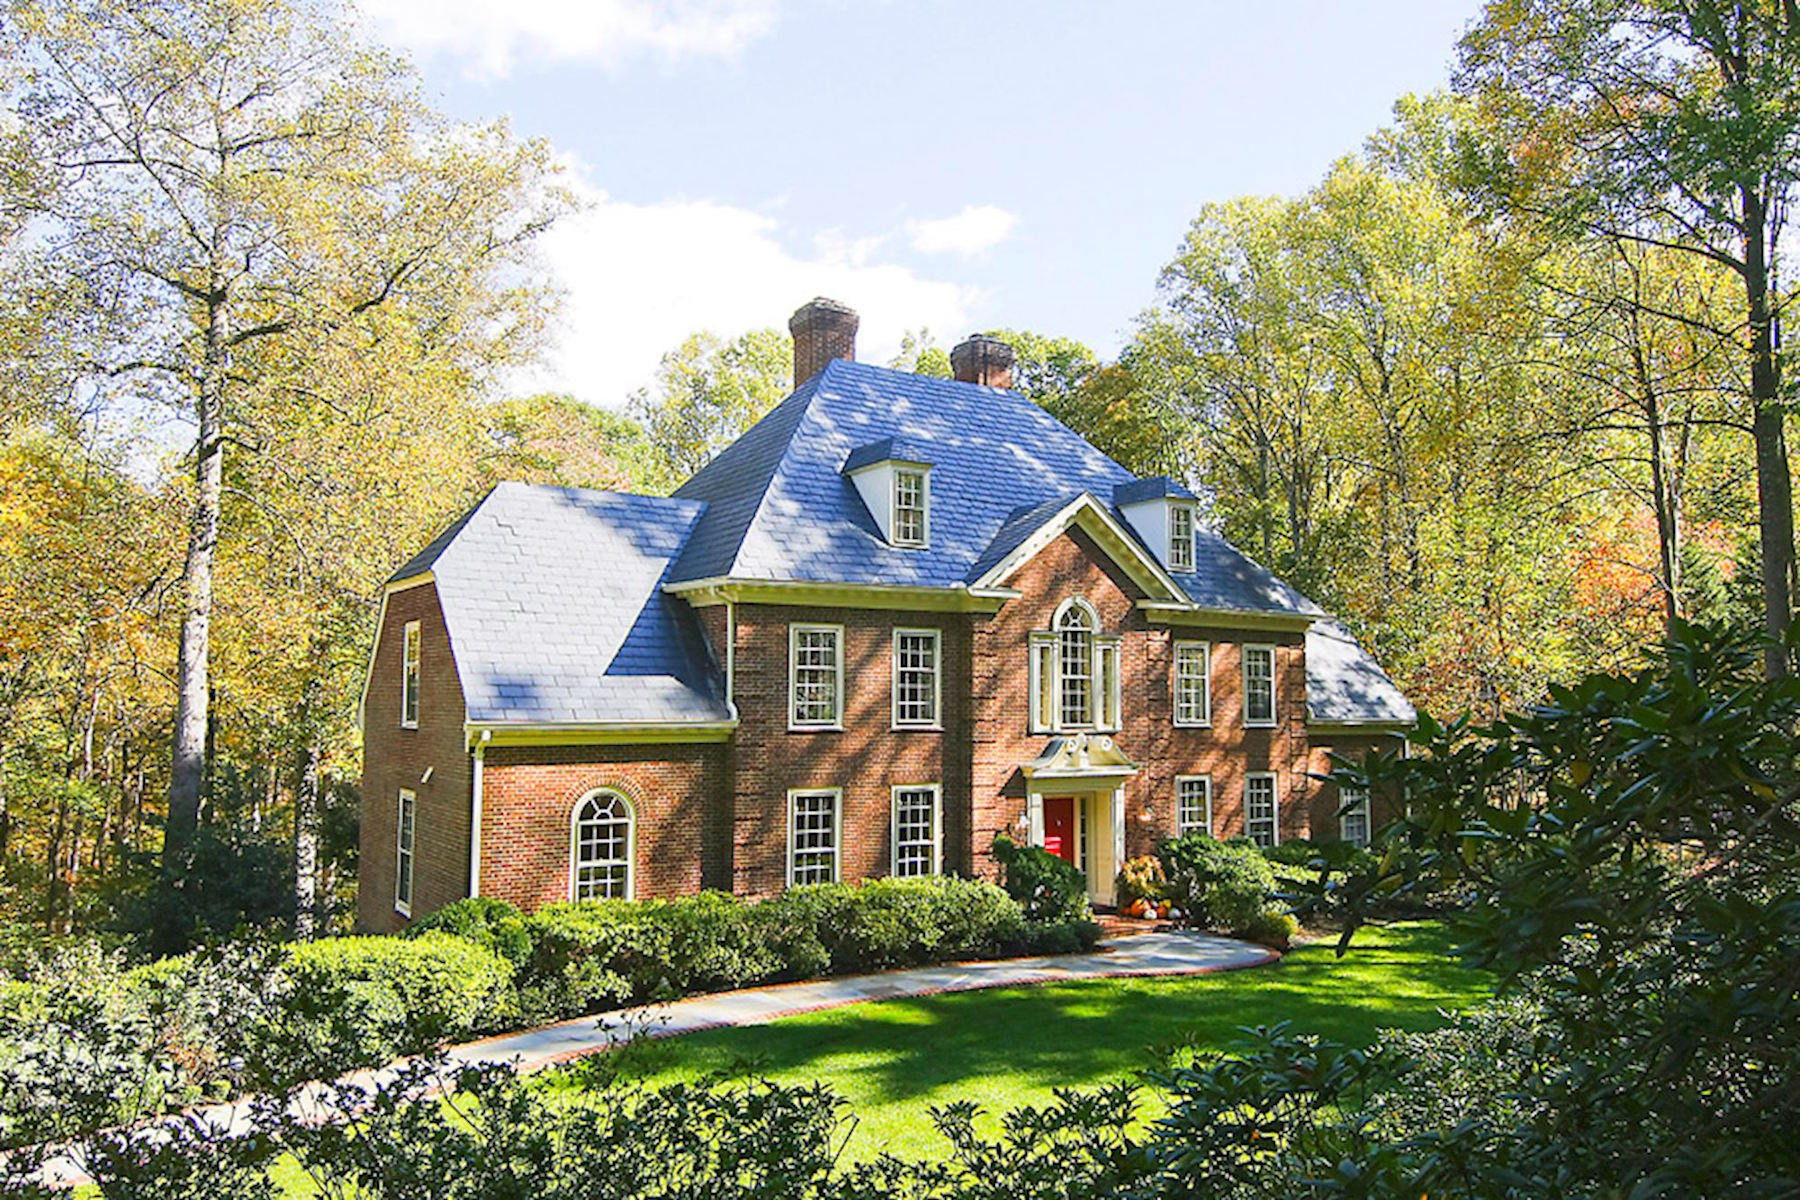 Single Family Home for Sale at Stately Georgian in Park-like Setting 9009 Clewerwall Dr Bethesda, Maryland, 20817 United States